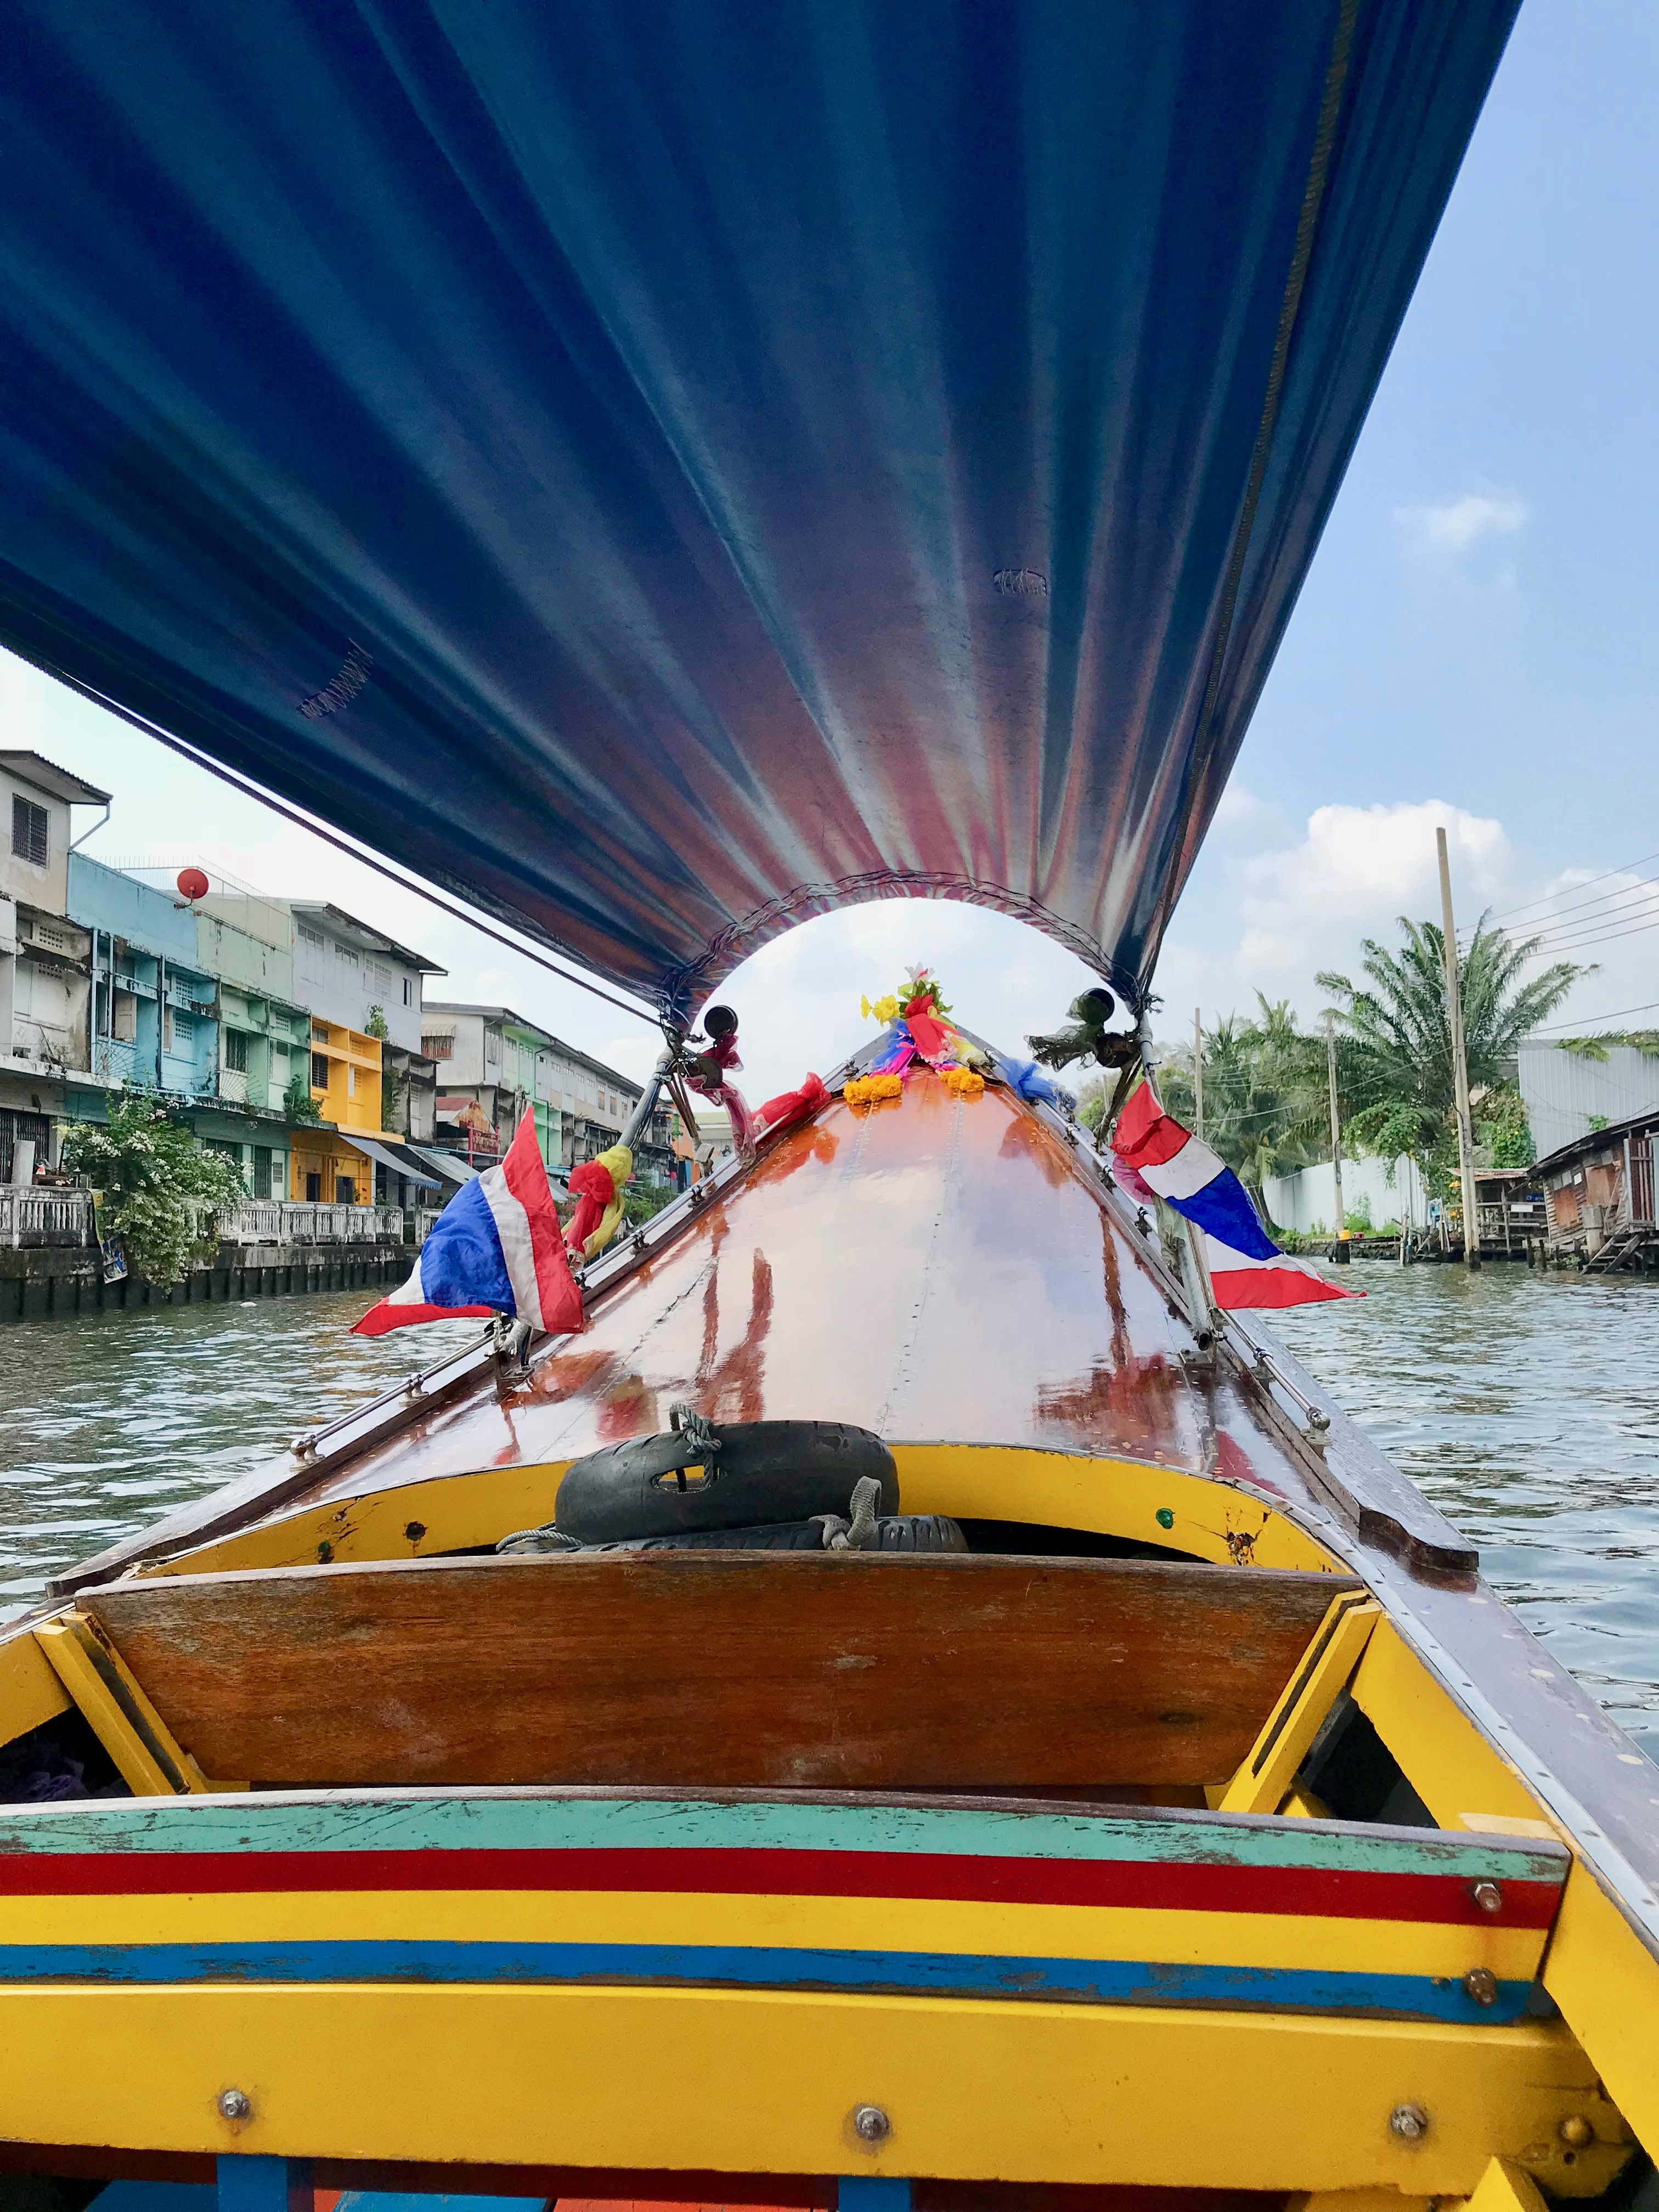 A ride on a Longtail Boat through the Thonburi Canals